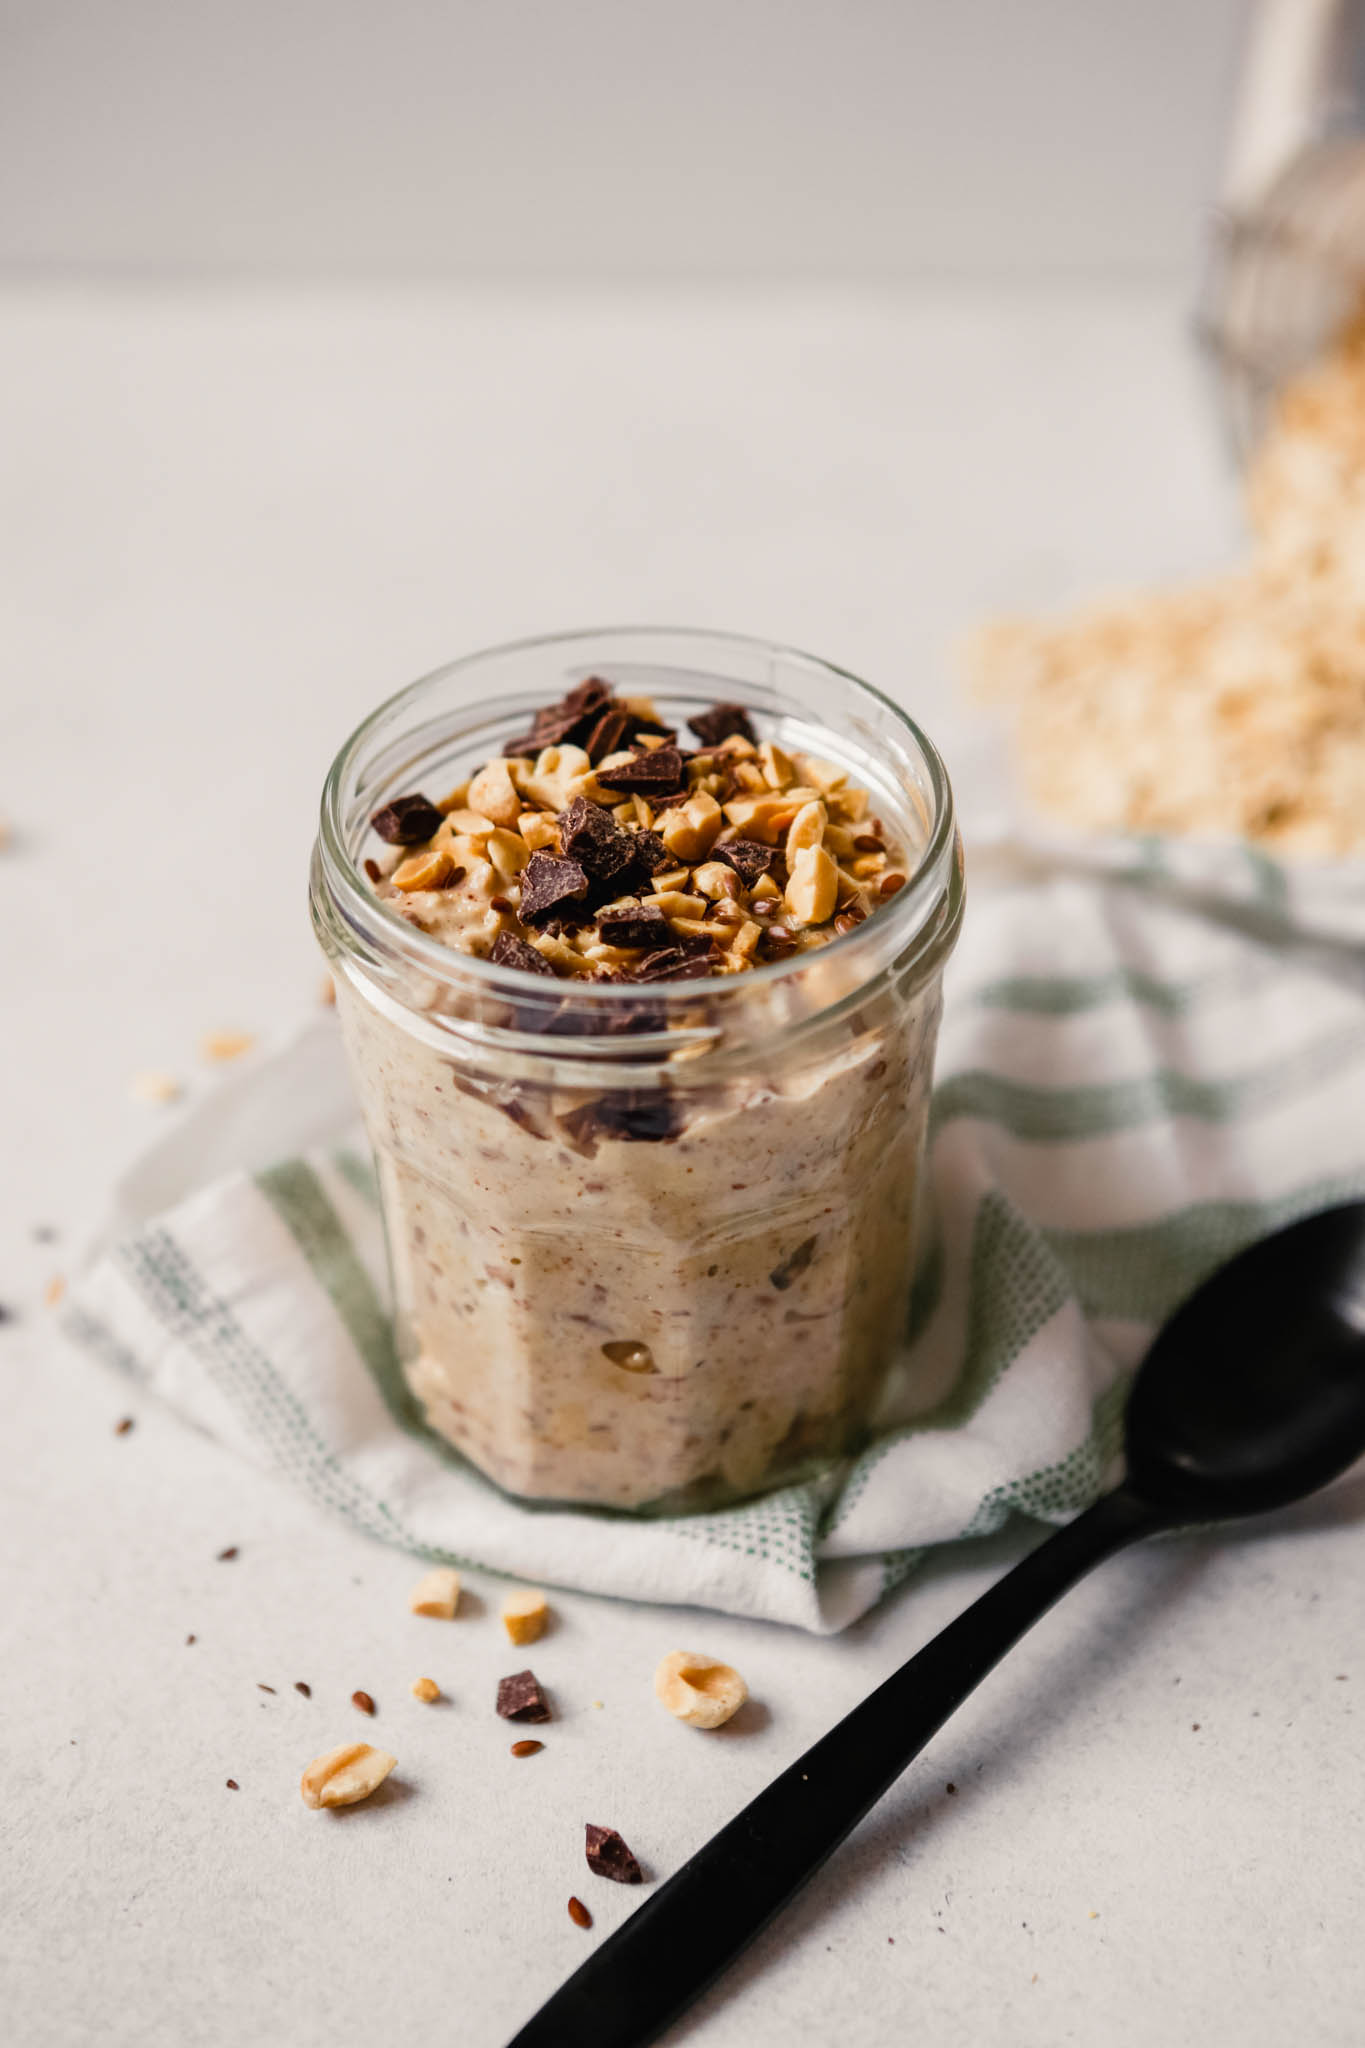 Photograph of chocolate peanut butter overnight oats in a glass jar on a table with spilled oats